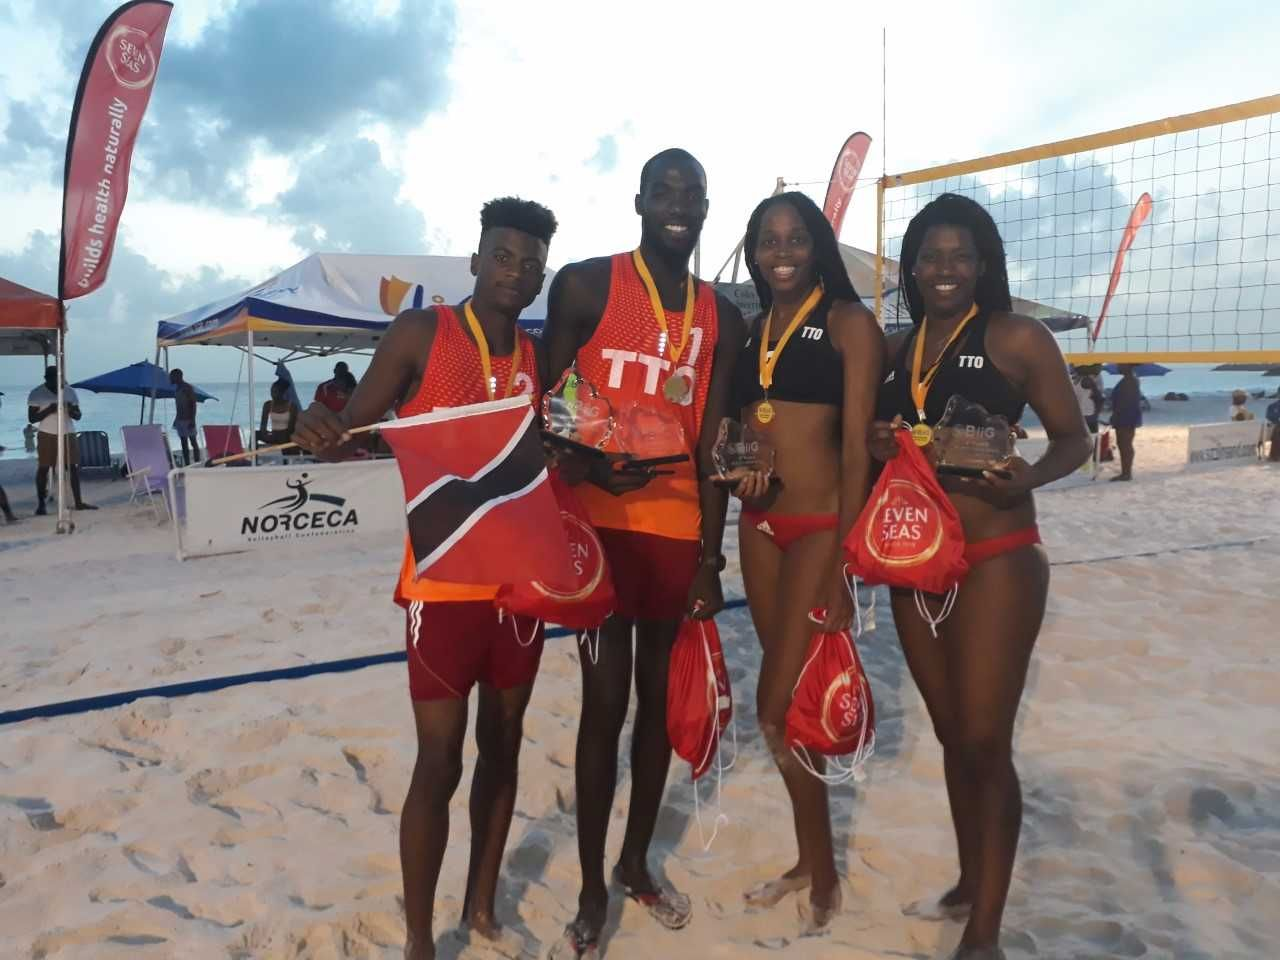 T&T's beach volleyballers Daneil Williams, from left, Daynte Stewart, Abby Blackman and Rheeza Grant.